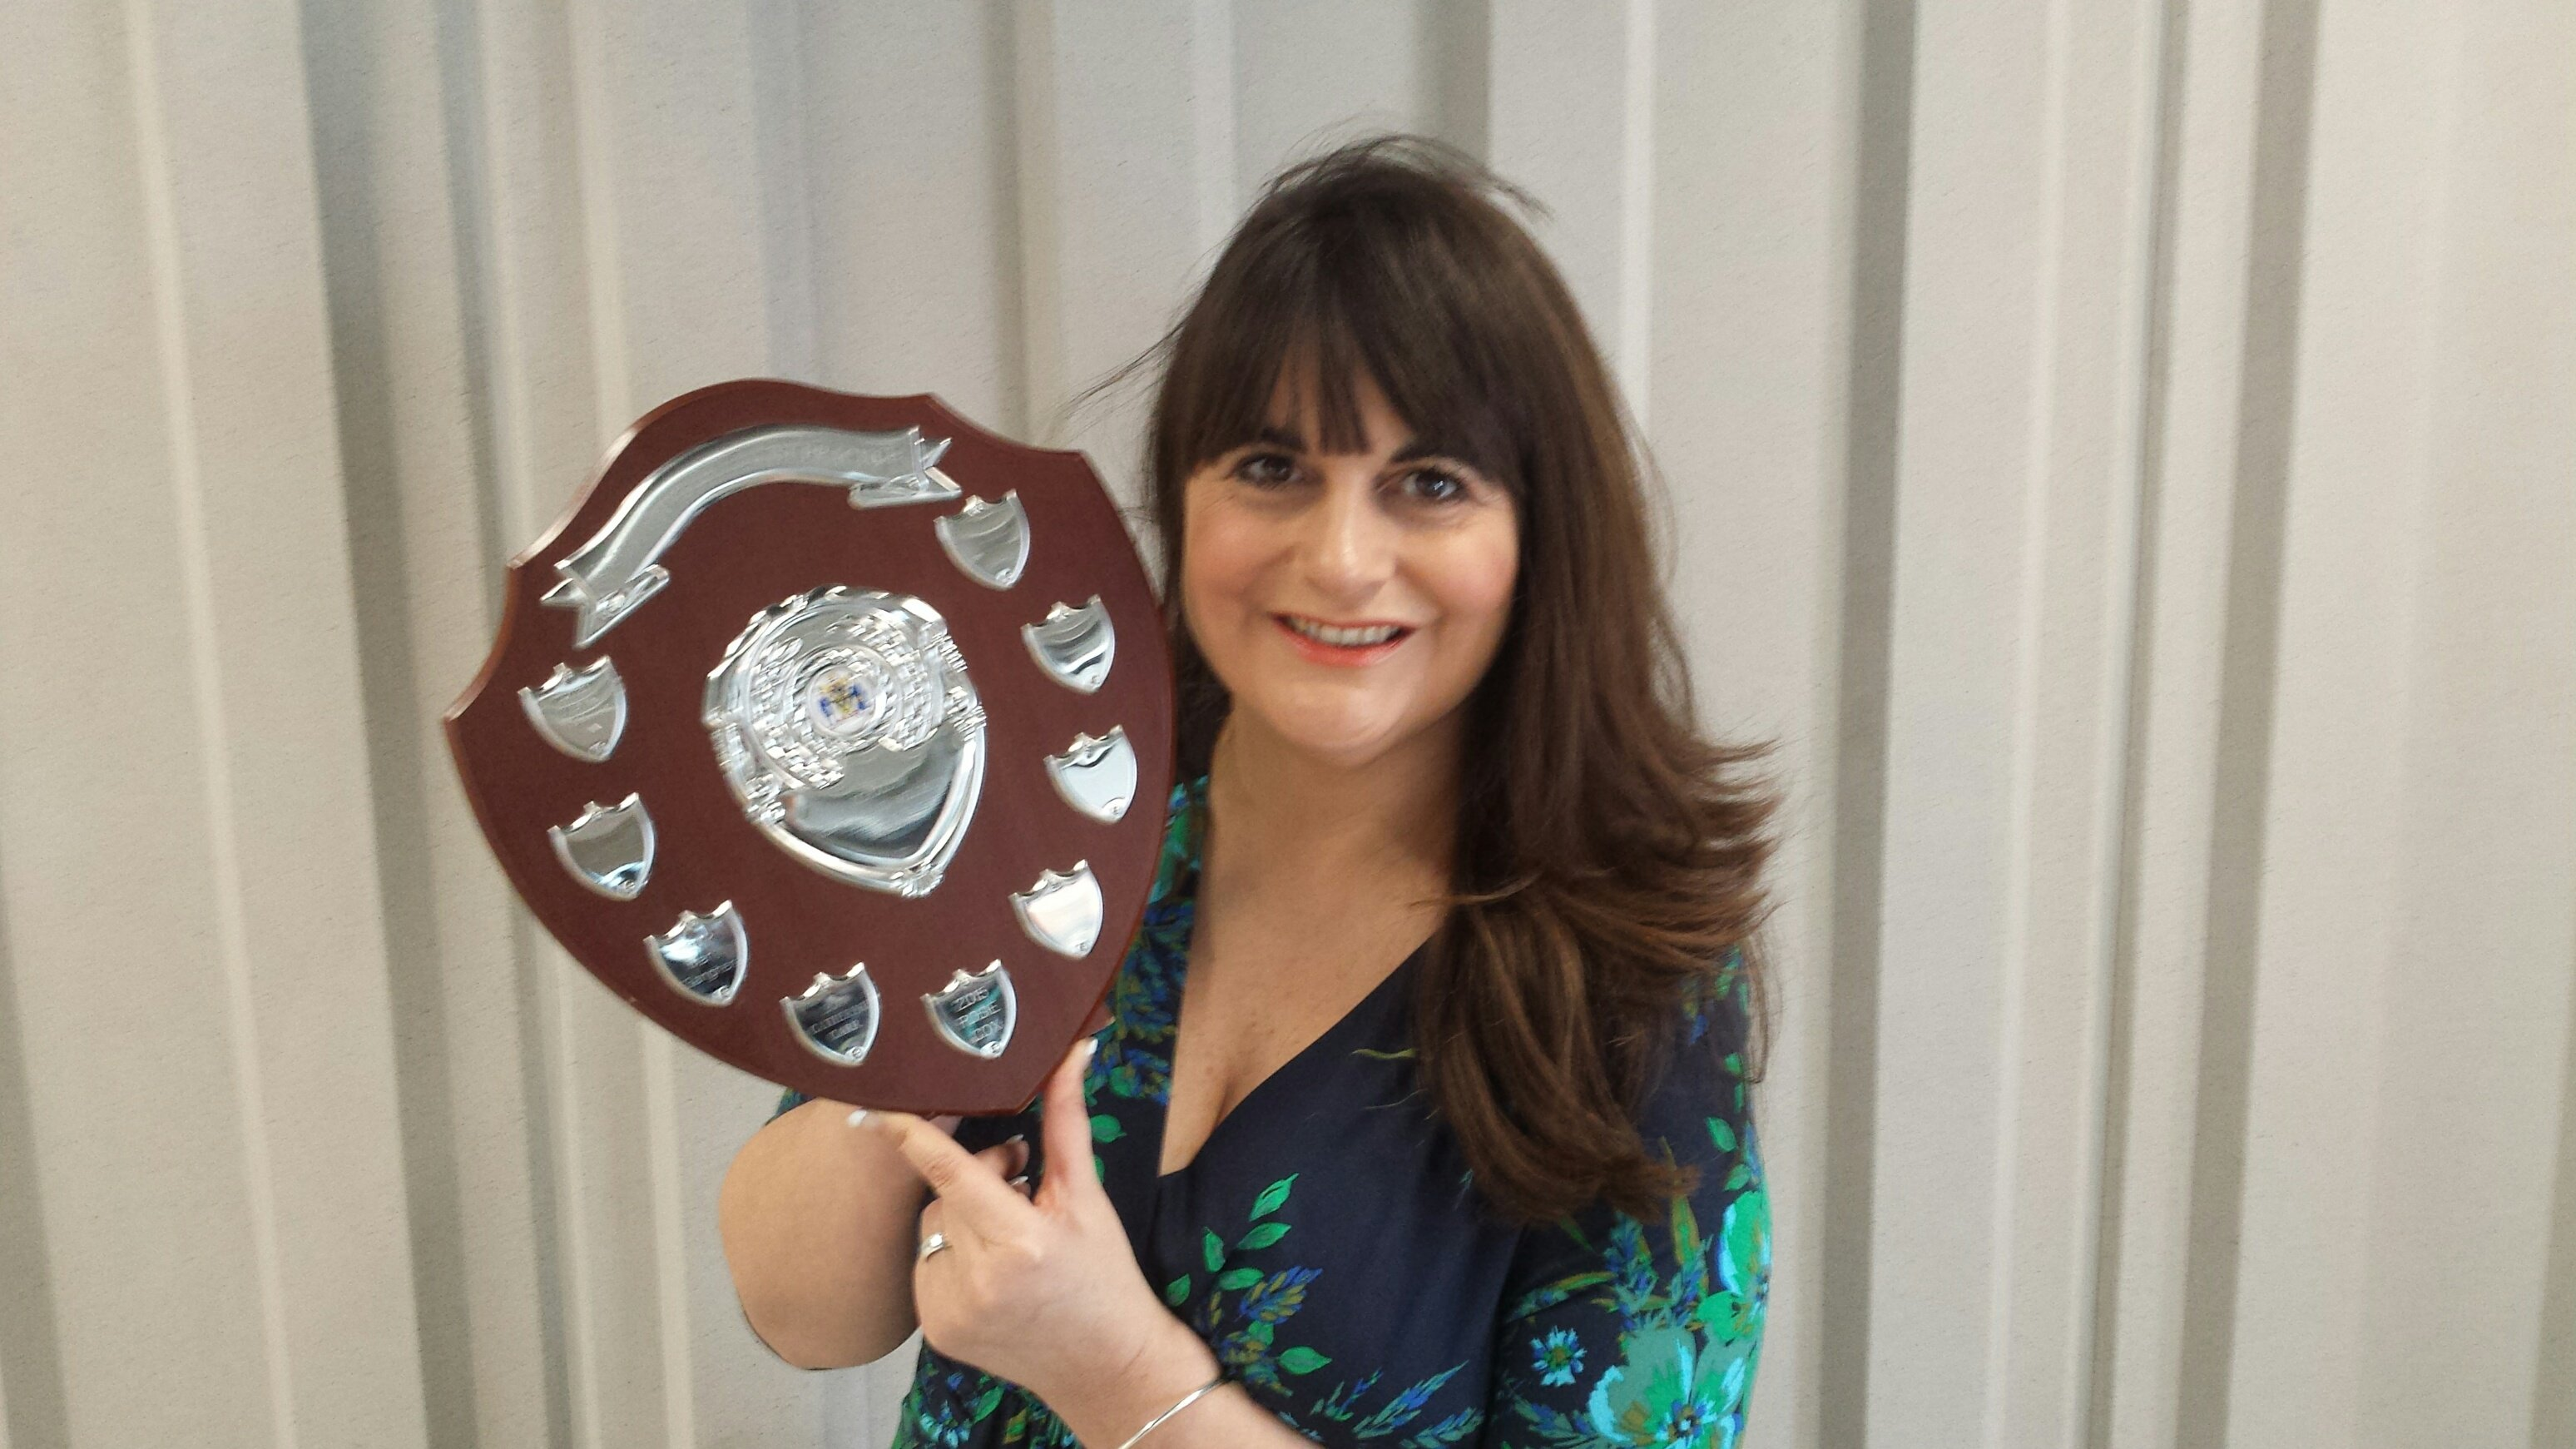 School nurse holding award